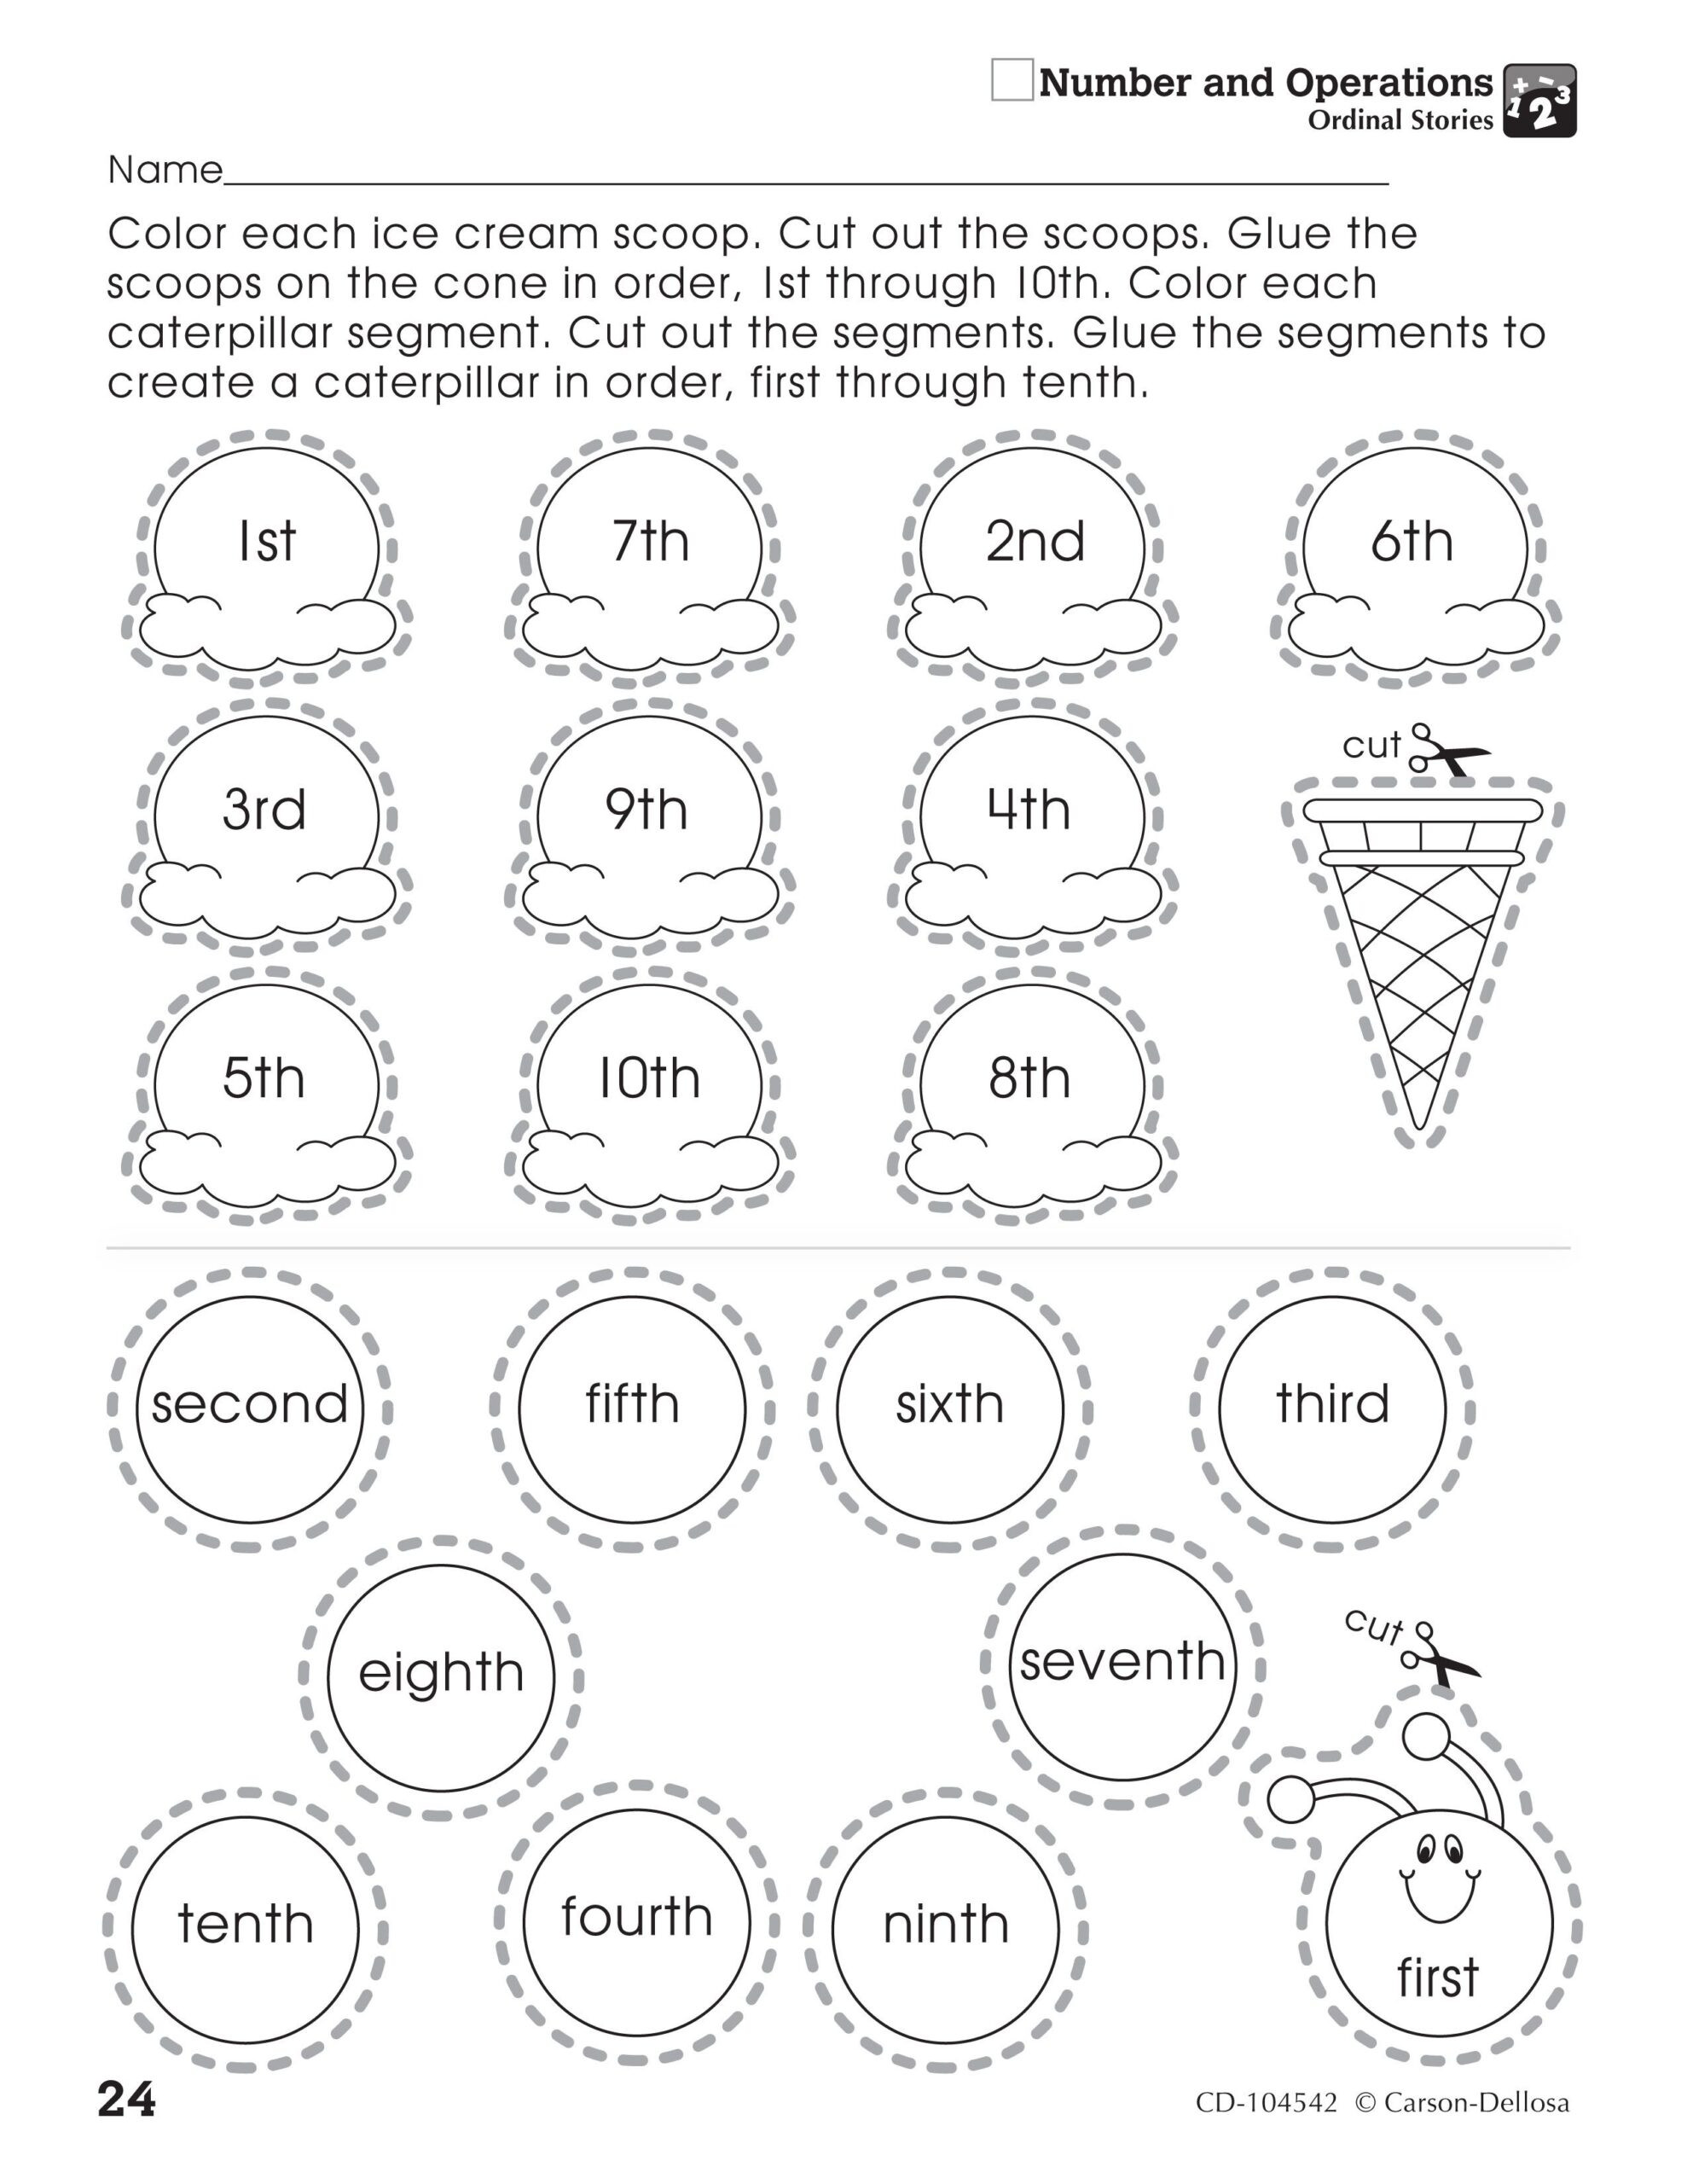 Picture Graph Worksheets 2nd Grade the ordinal Stories Activity Sheet Helps assist Number and